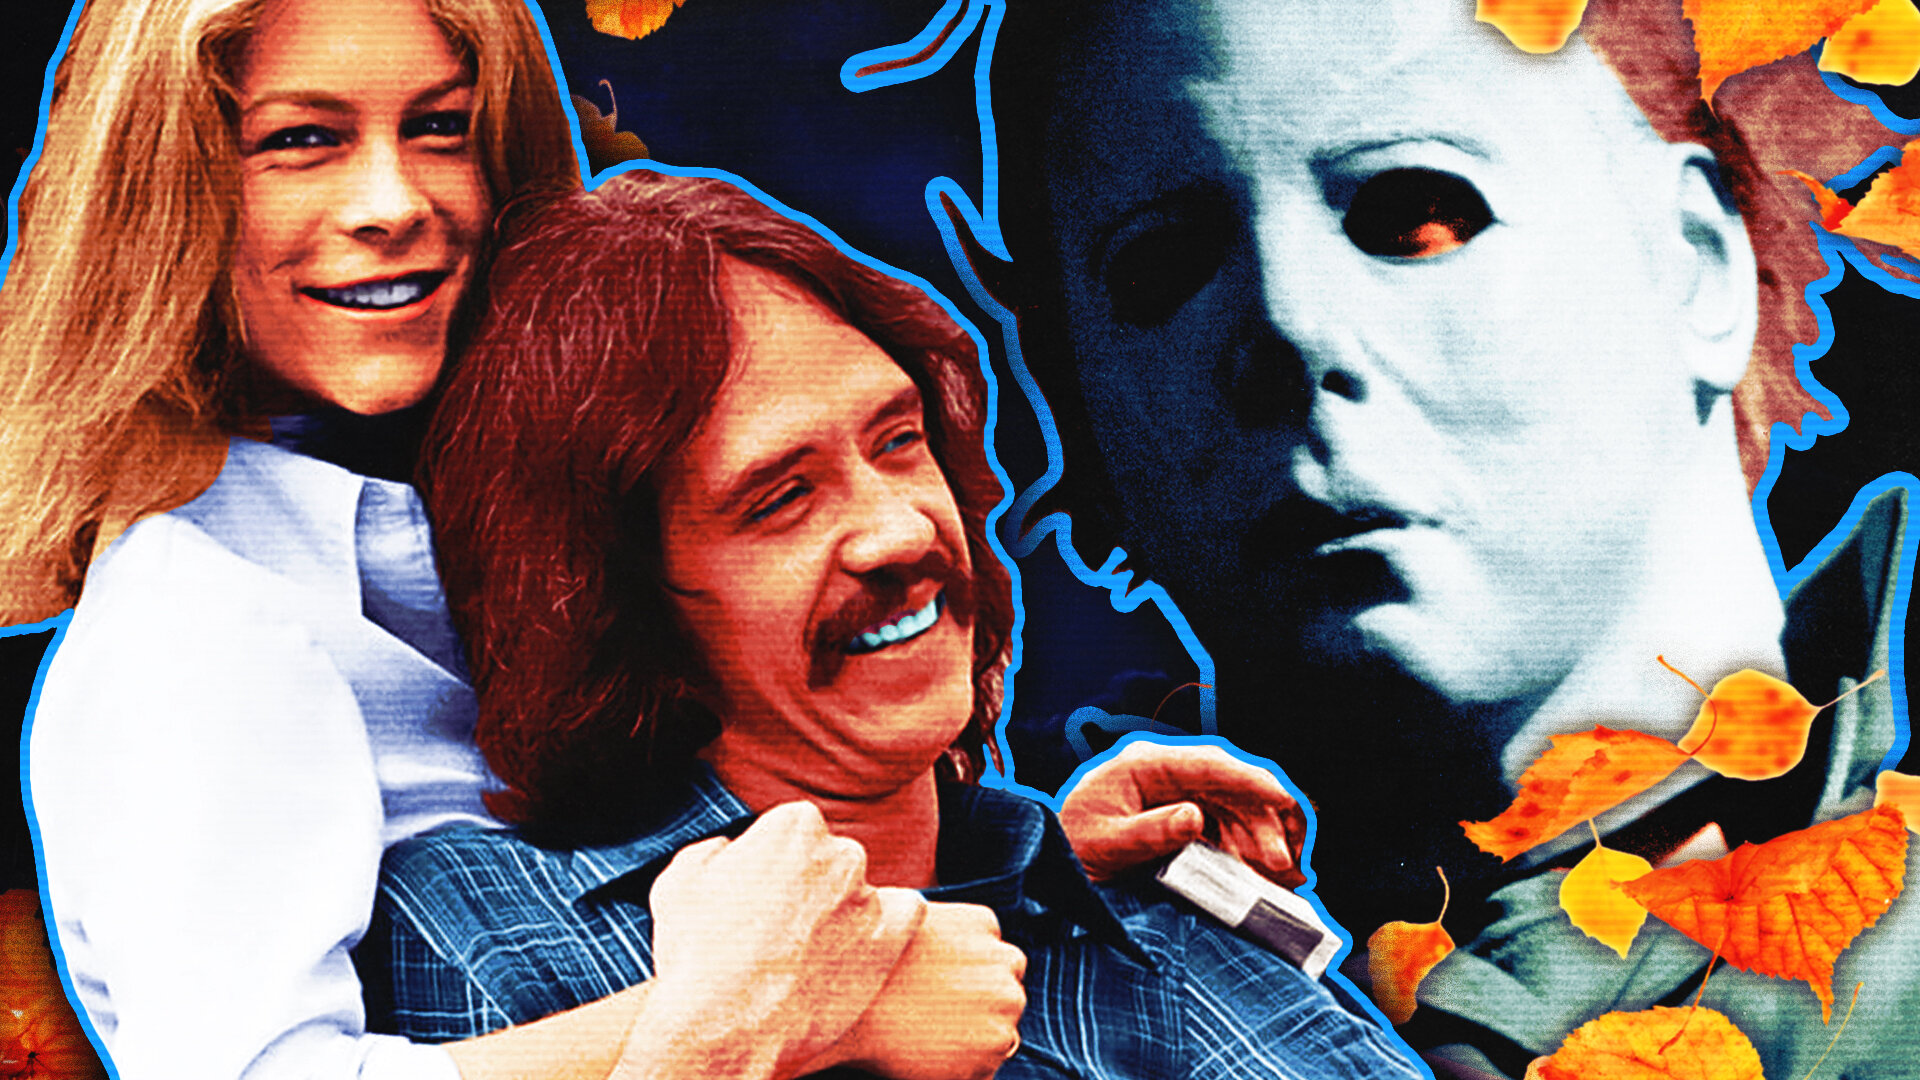 Episode 10 • A Brief Look At John Carpenter's Early Films And 'Halloween'